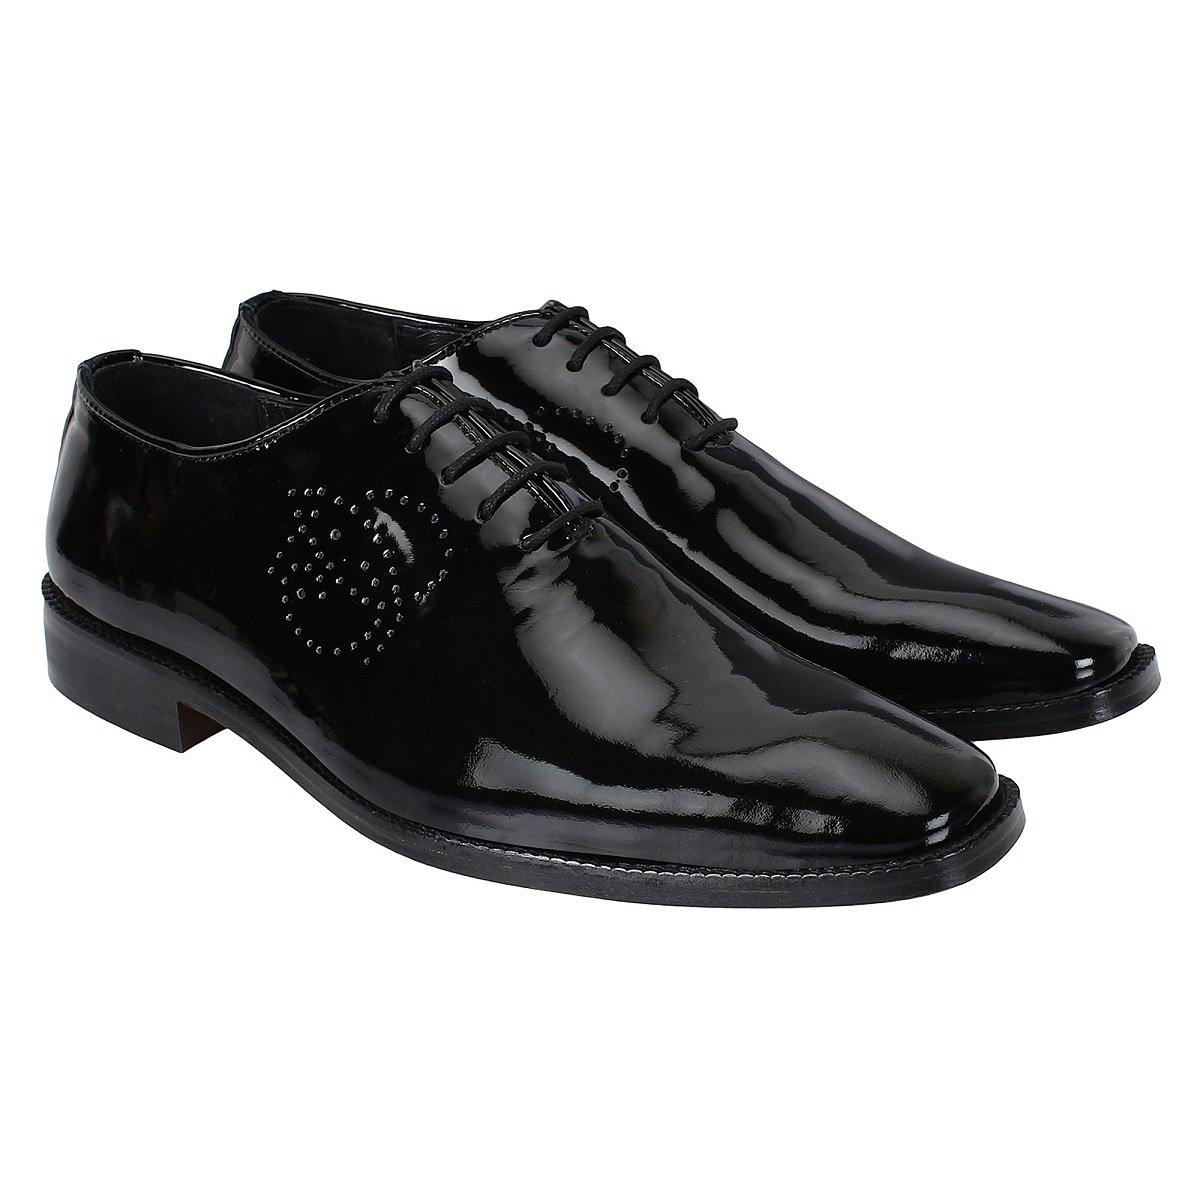 SeeandWear Luxury Patent Leather Shoes for Men - SeeandWear